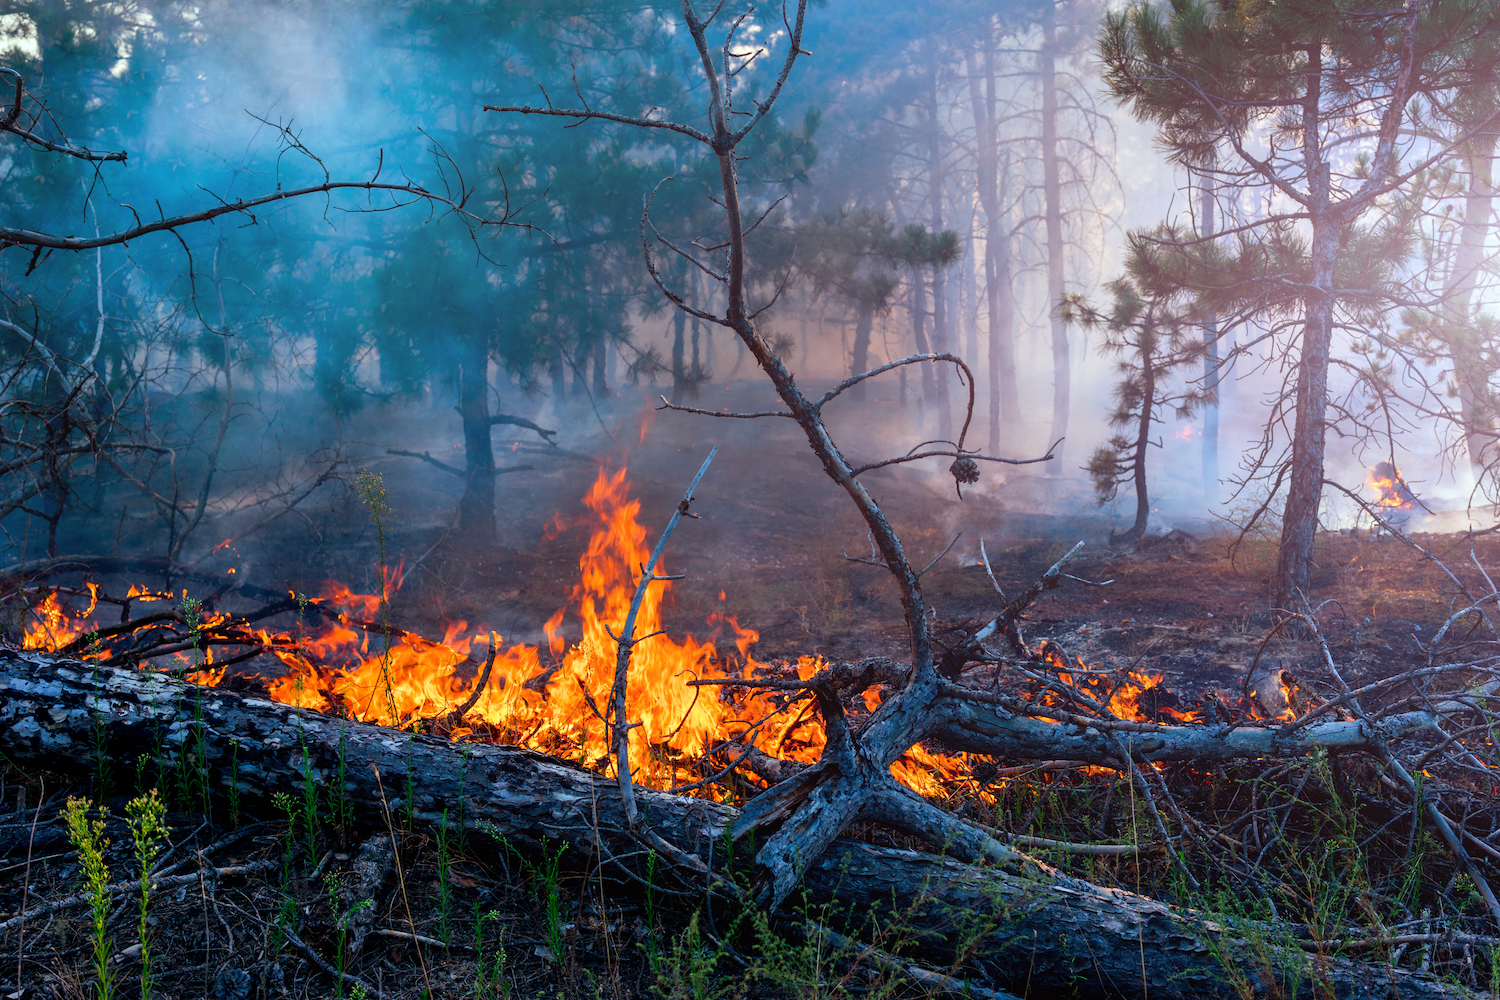 photo of wildfire burning a log on the ground in a forest